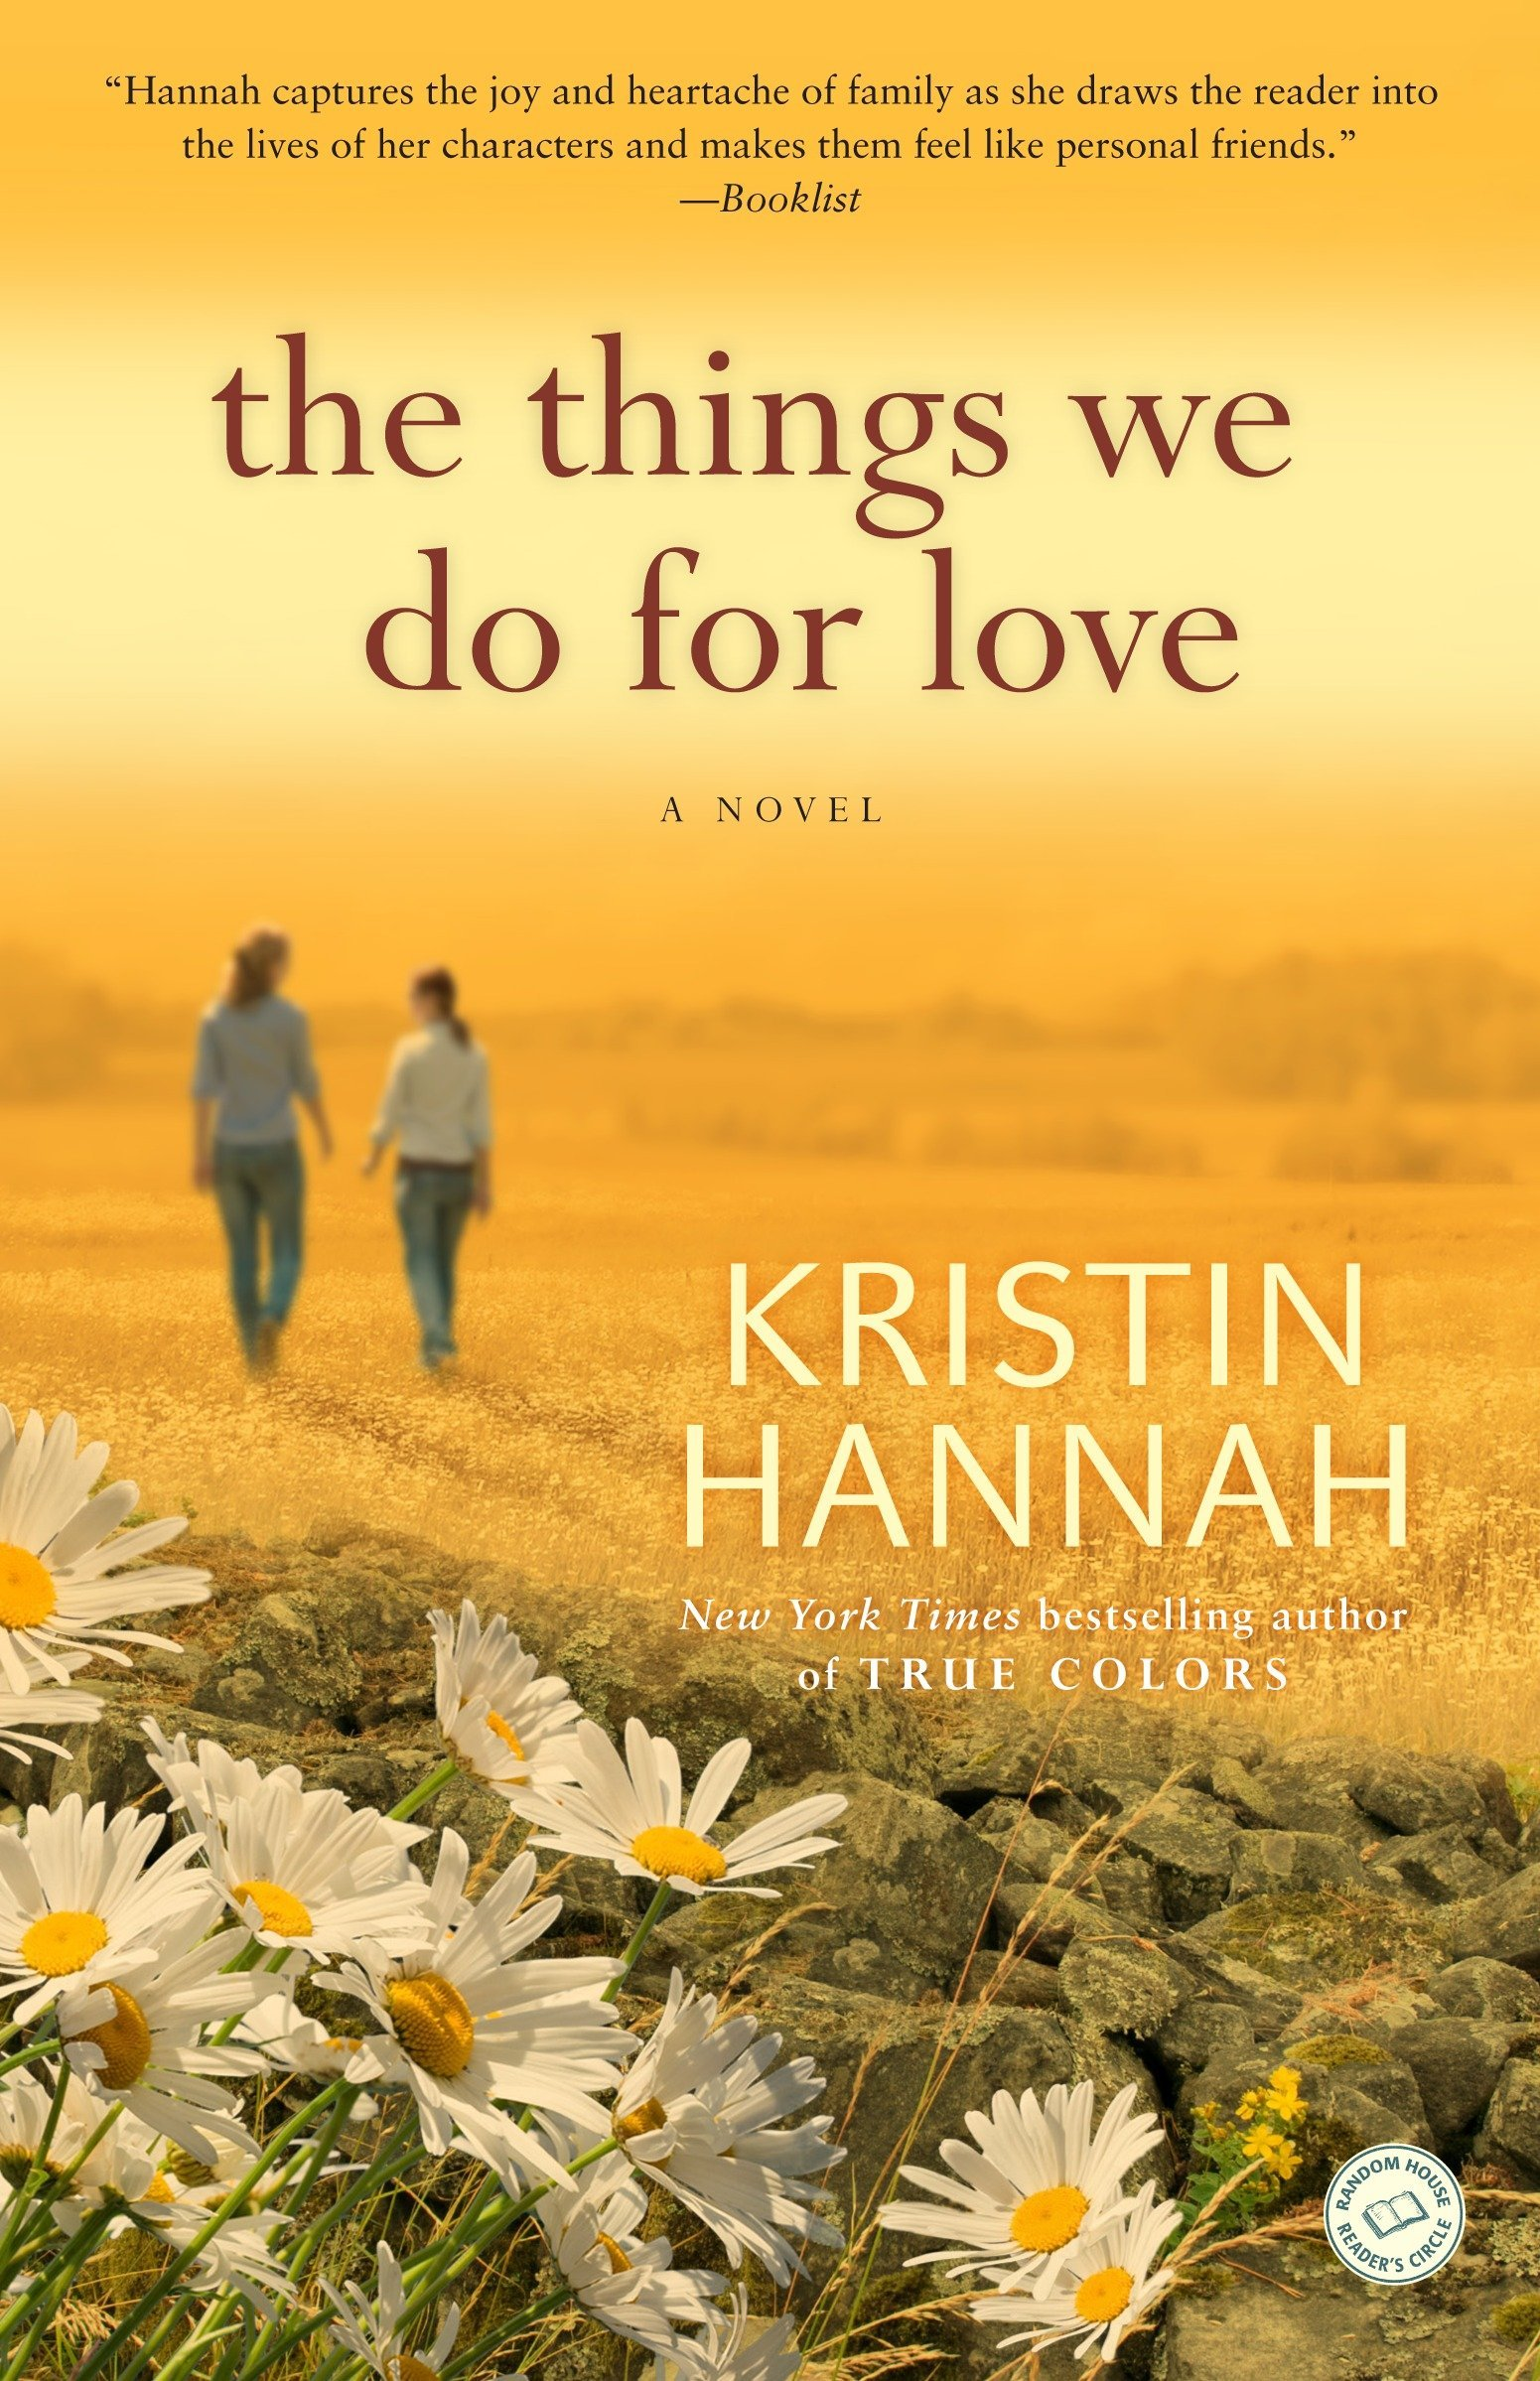 The Things We Do for Love (2010 - Paperback) - Kristin Hannah